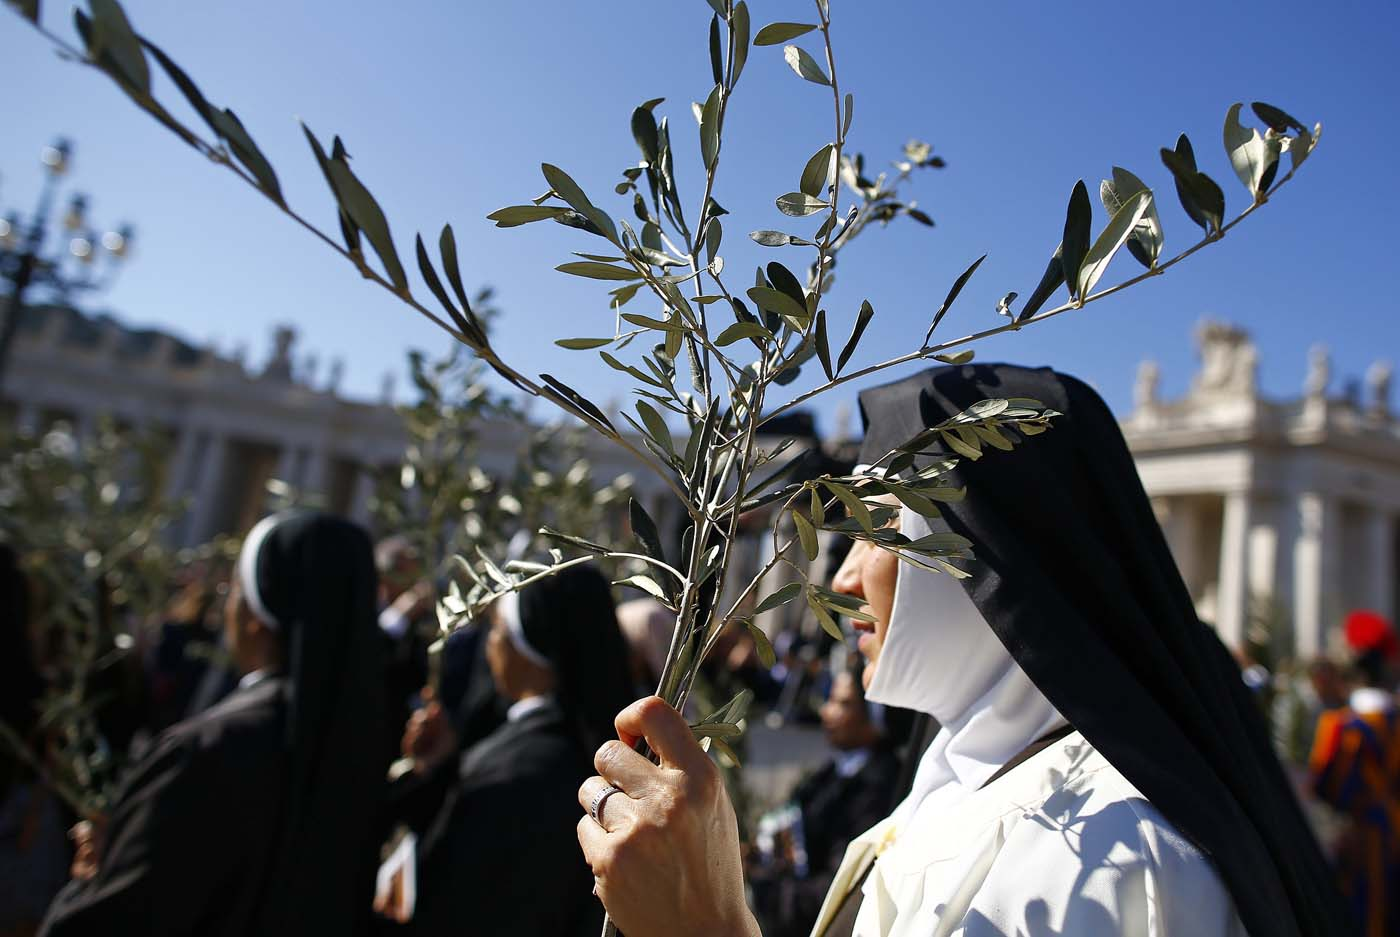 A nun holds a palm during the the Palm Sunday Mass led by Pope Francis in Saint Peter's Square at the Vatican April 9, 2017. REUTERS/Tony Gentile